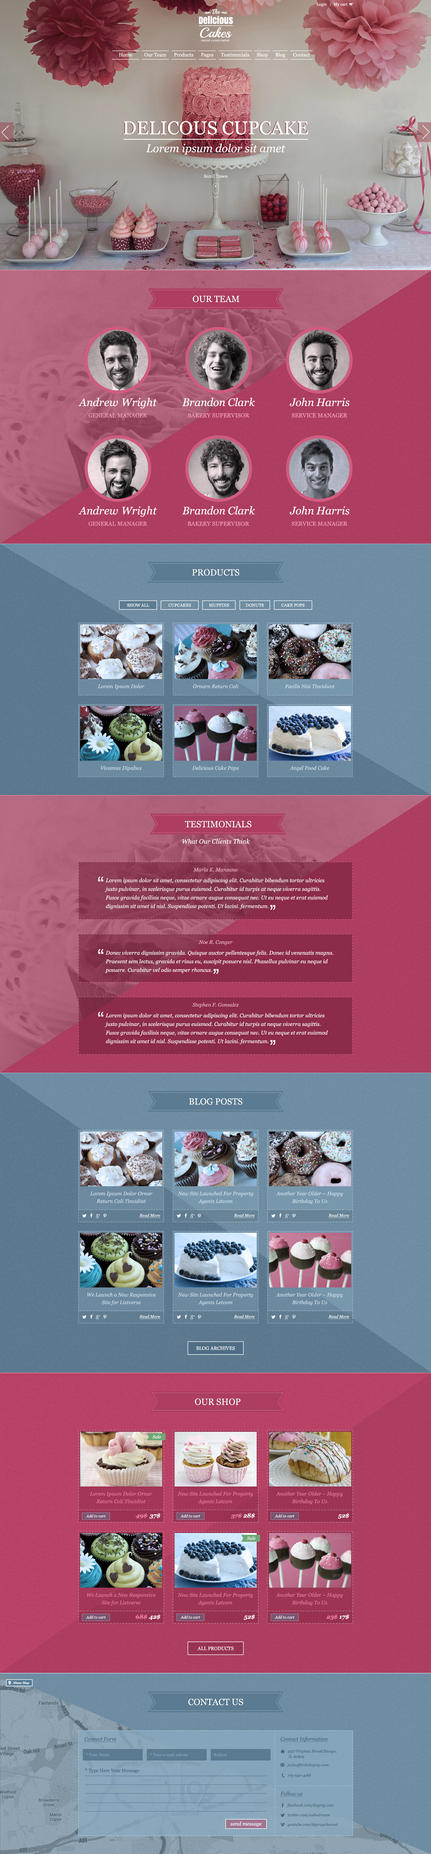 TheDeliciousCake PSD Template - Dark Version by webodream